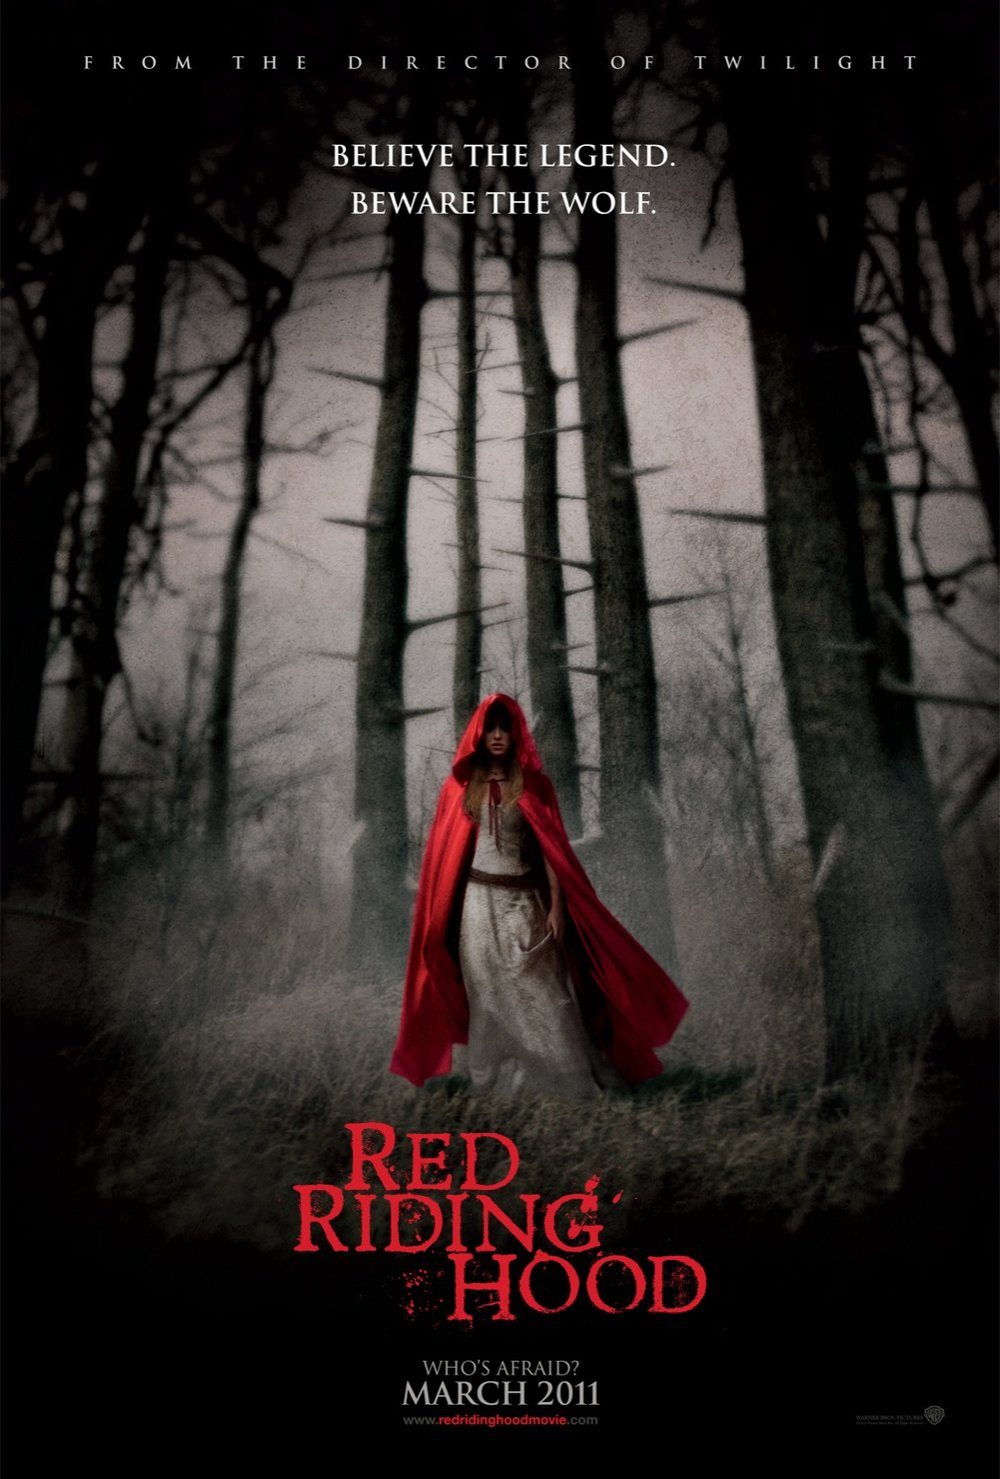 Red-Riding-Hood-movie-poster04.jpg